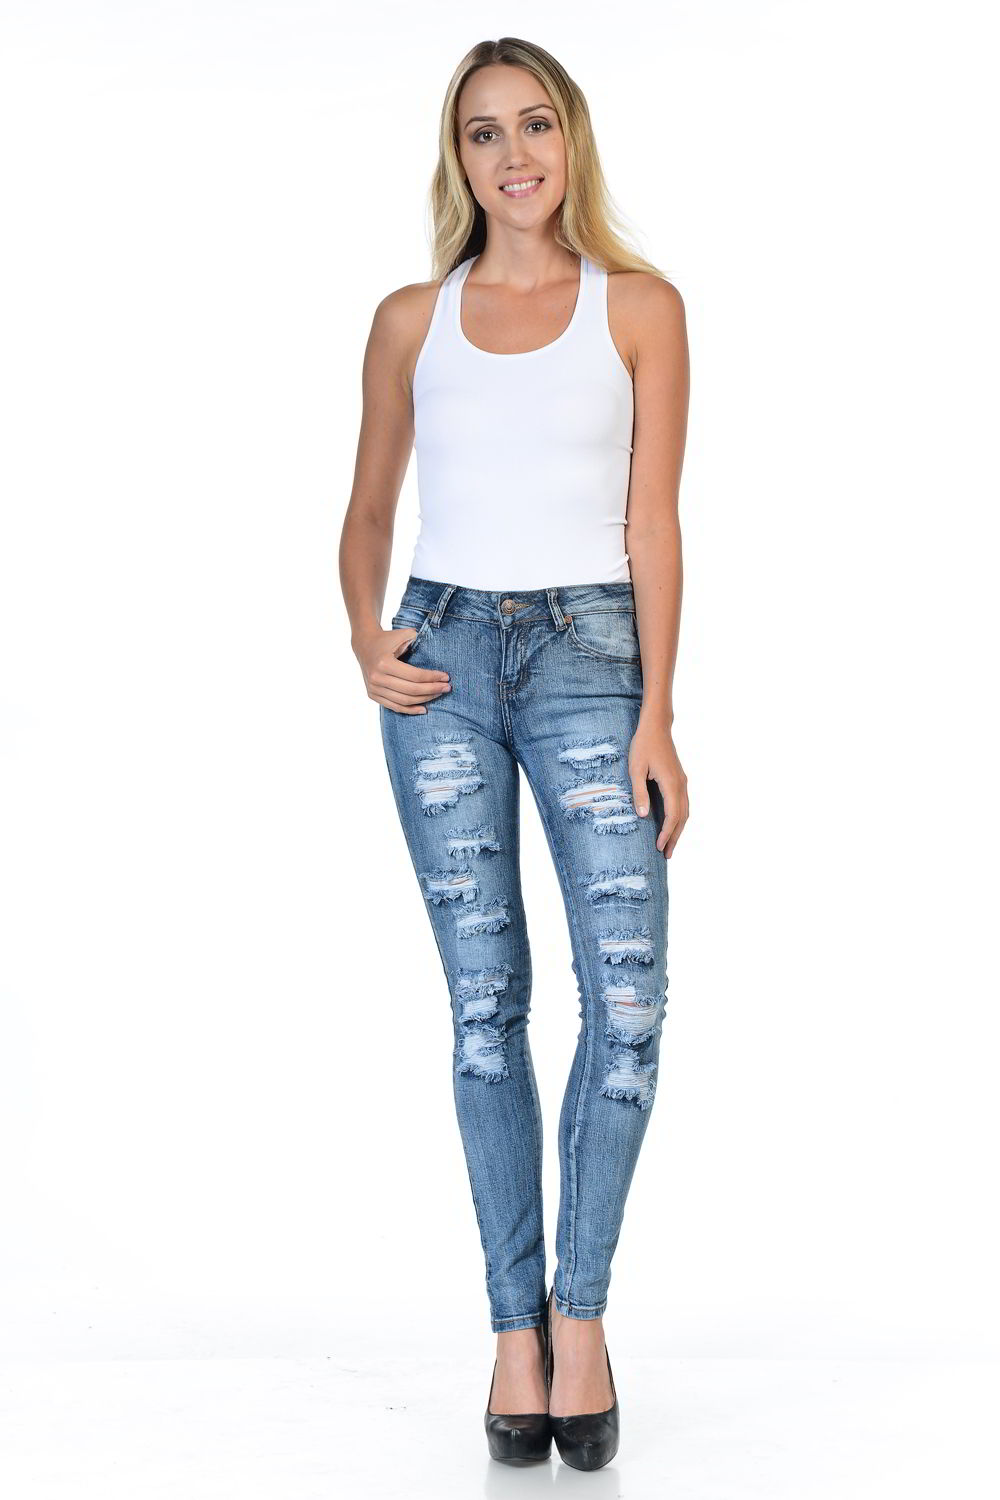 Sweet Look Premium Edition Women's Jeans - Push Up - Style WY5034A-R